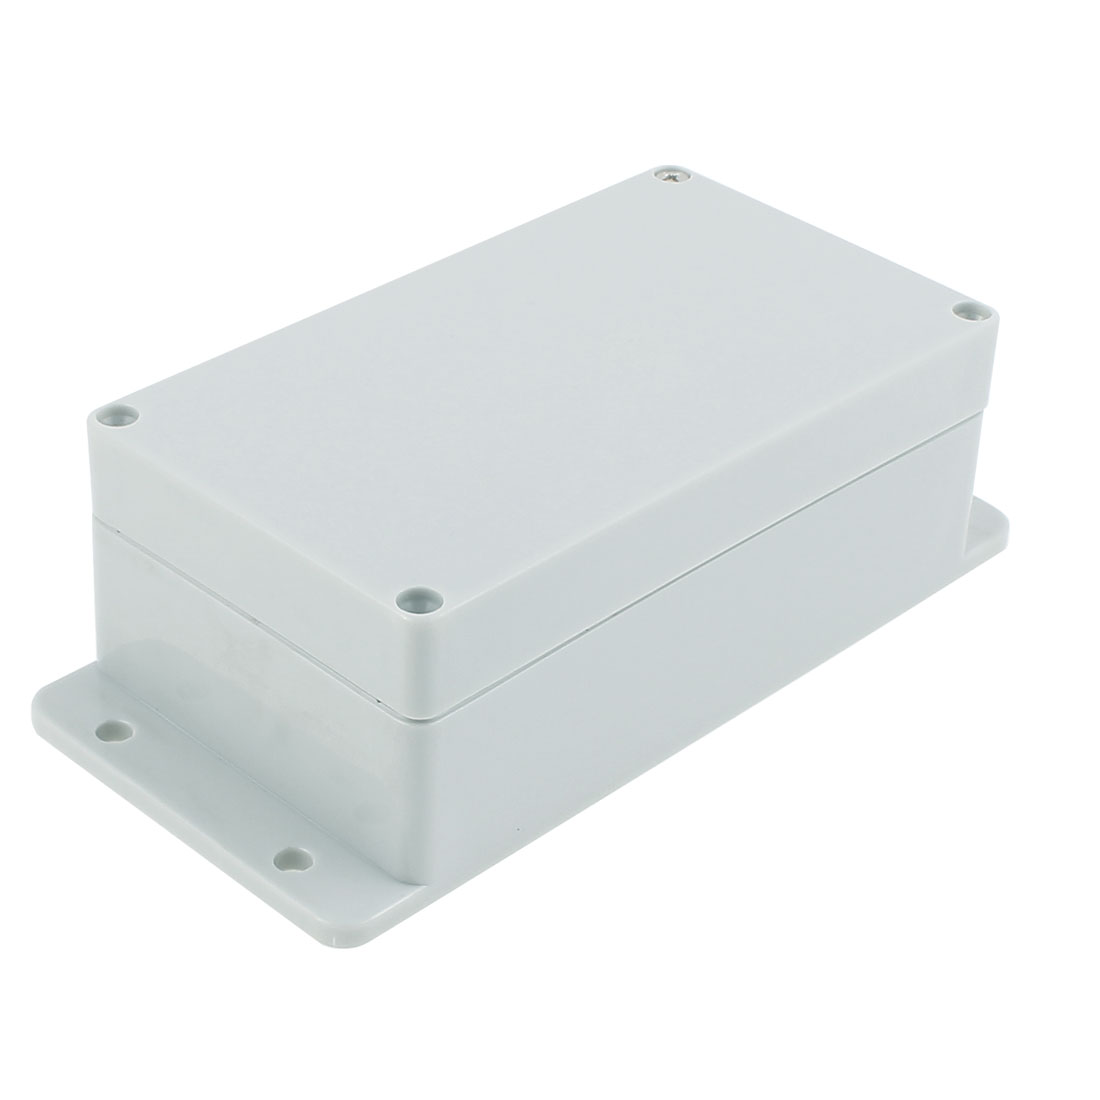 158 x 90 x 64mm Dustproof IP65 Junction Box Terminal Connecting Box Enclosure